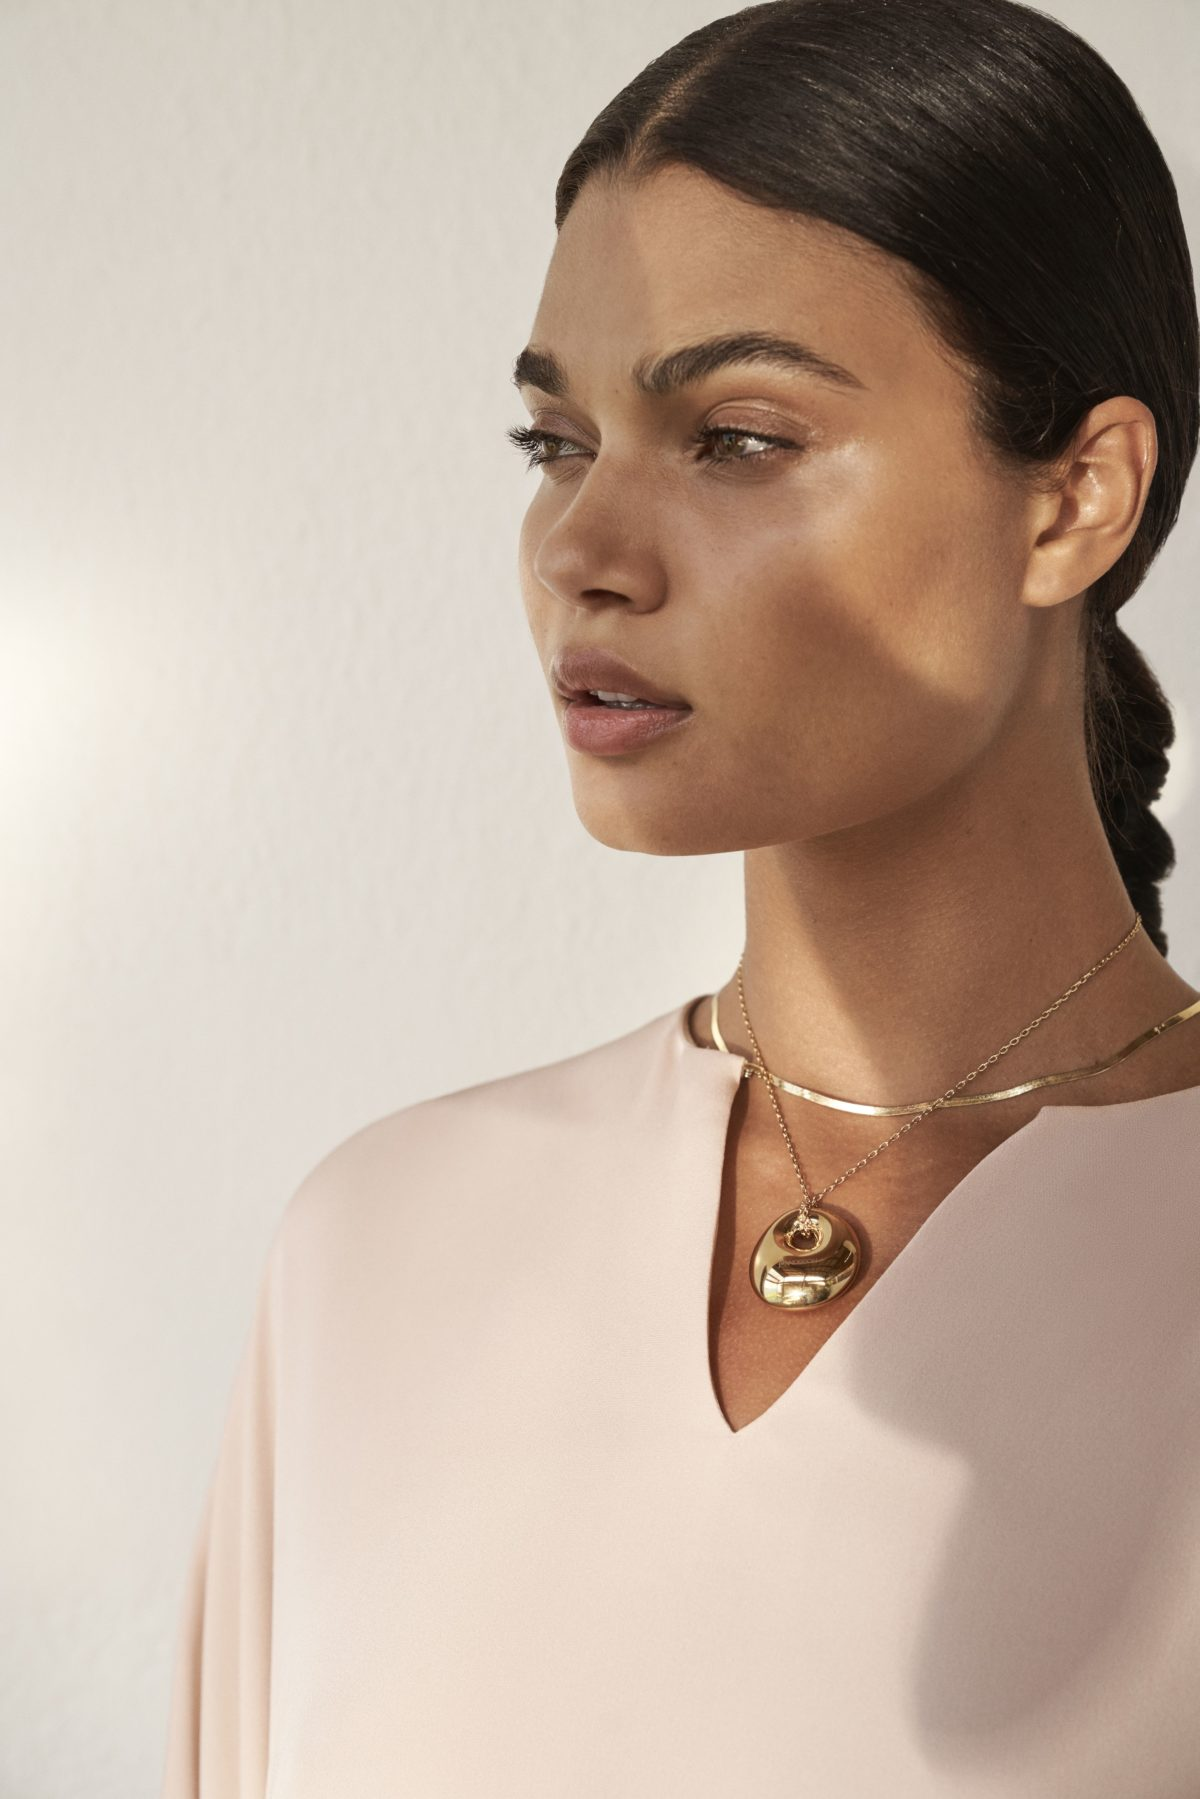 NET-A-PORTER Launches Exclusive Capsule Collections for Ramadan | The Luxe Diary